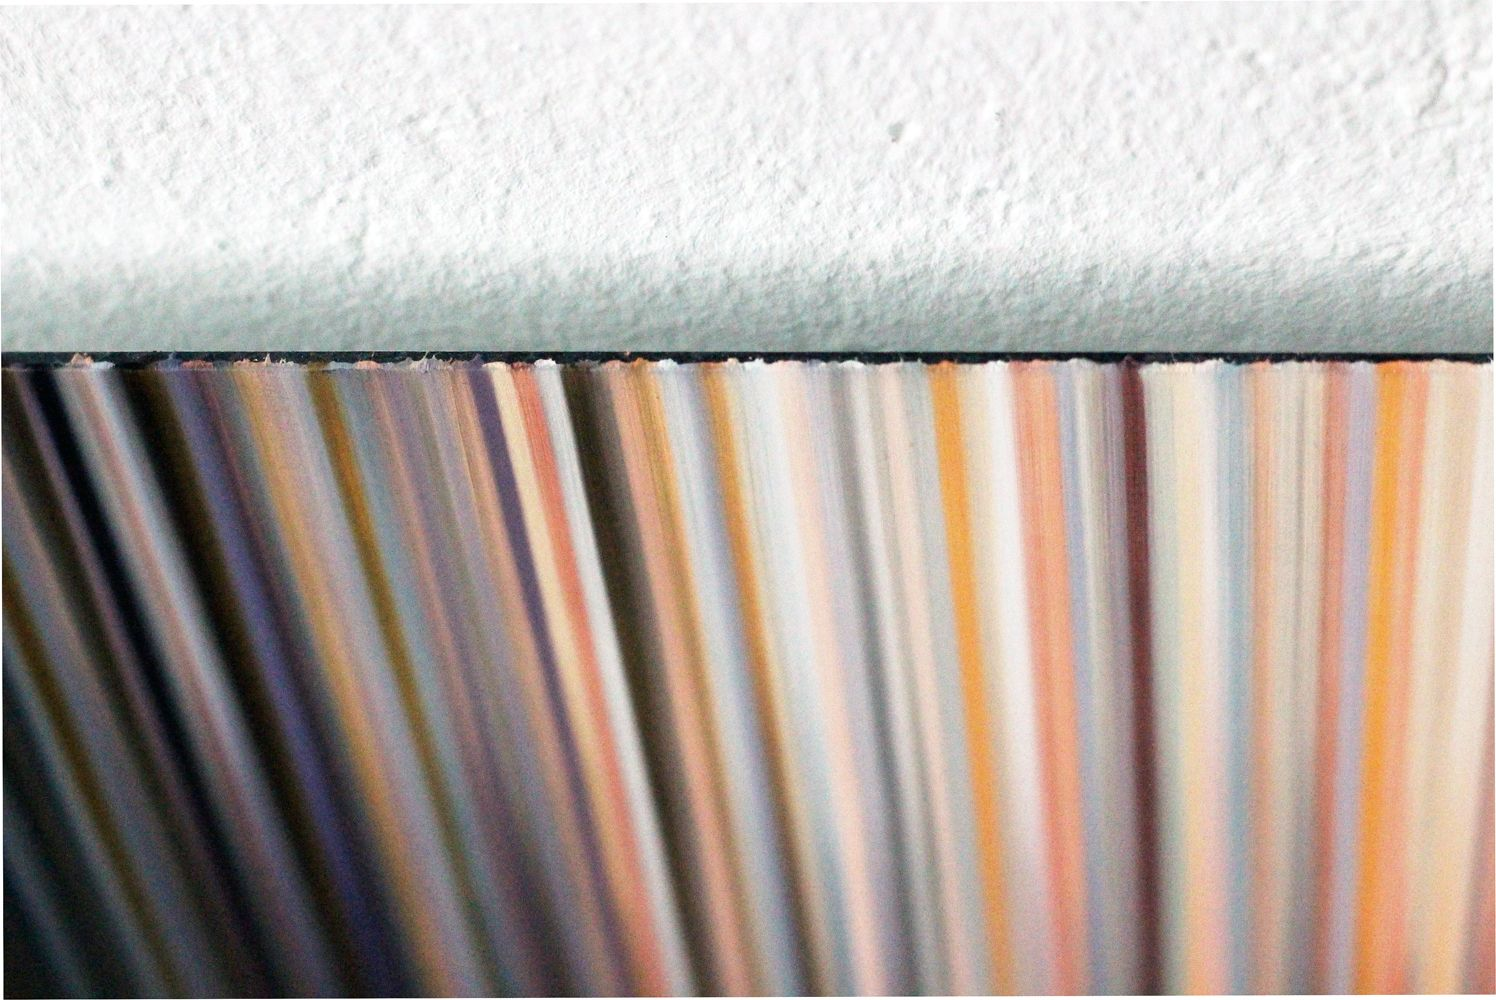 Light'n'Lines No.15 (BlackWhiteOrange),Doris Marten,Peinture contemporaine, detail 4